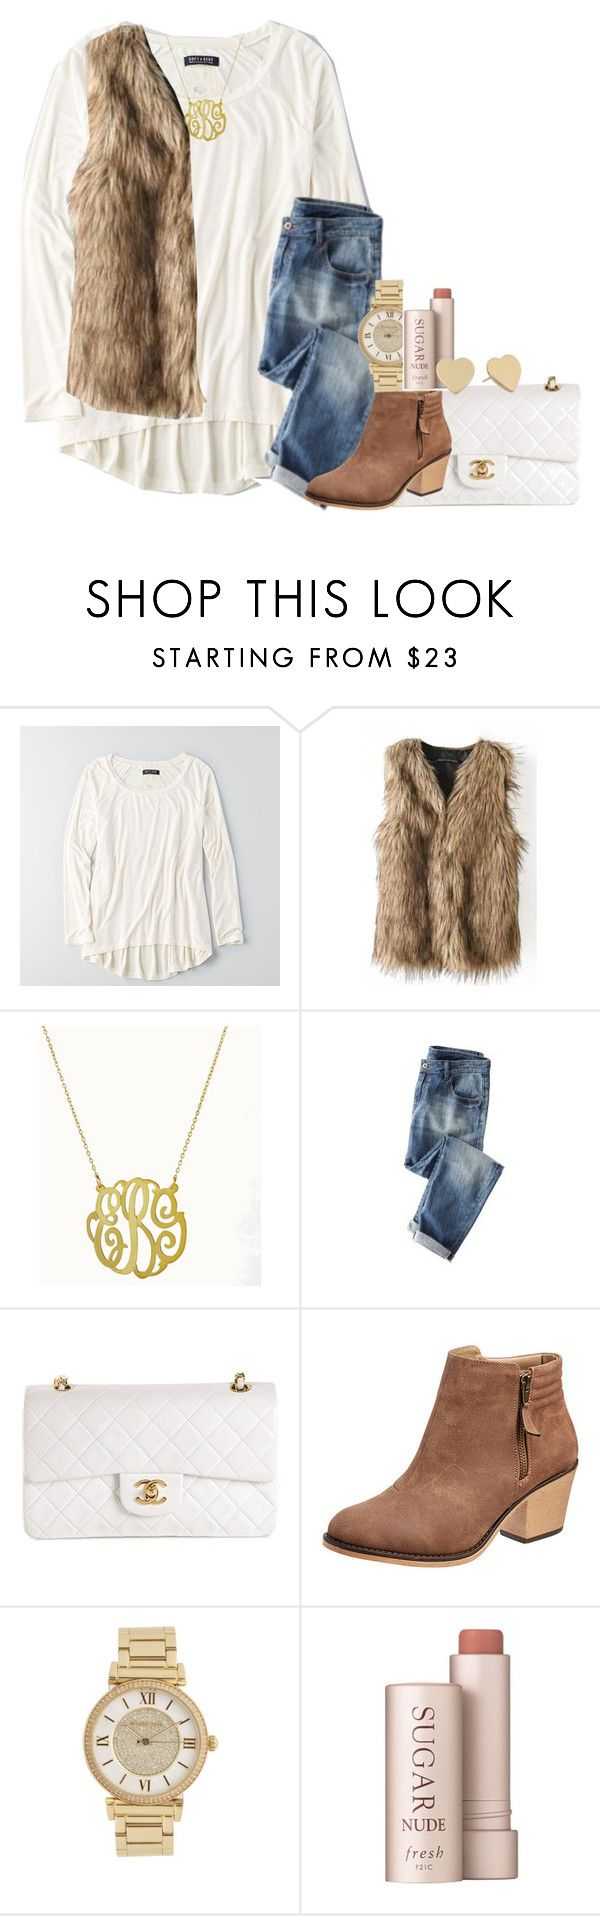 """""""why so serious"""" by econgdon ❤ liked on Polyvore featuring мода, American Eagle Outfitters, Wrap, Chanel, Michael Kors, Fresh и Kate Spade"""